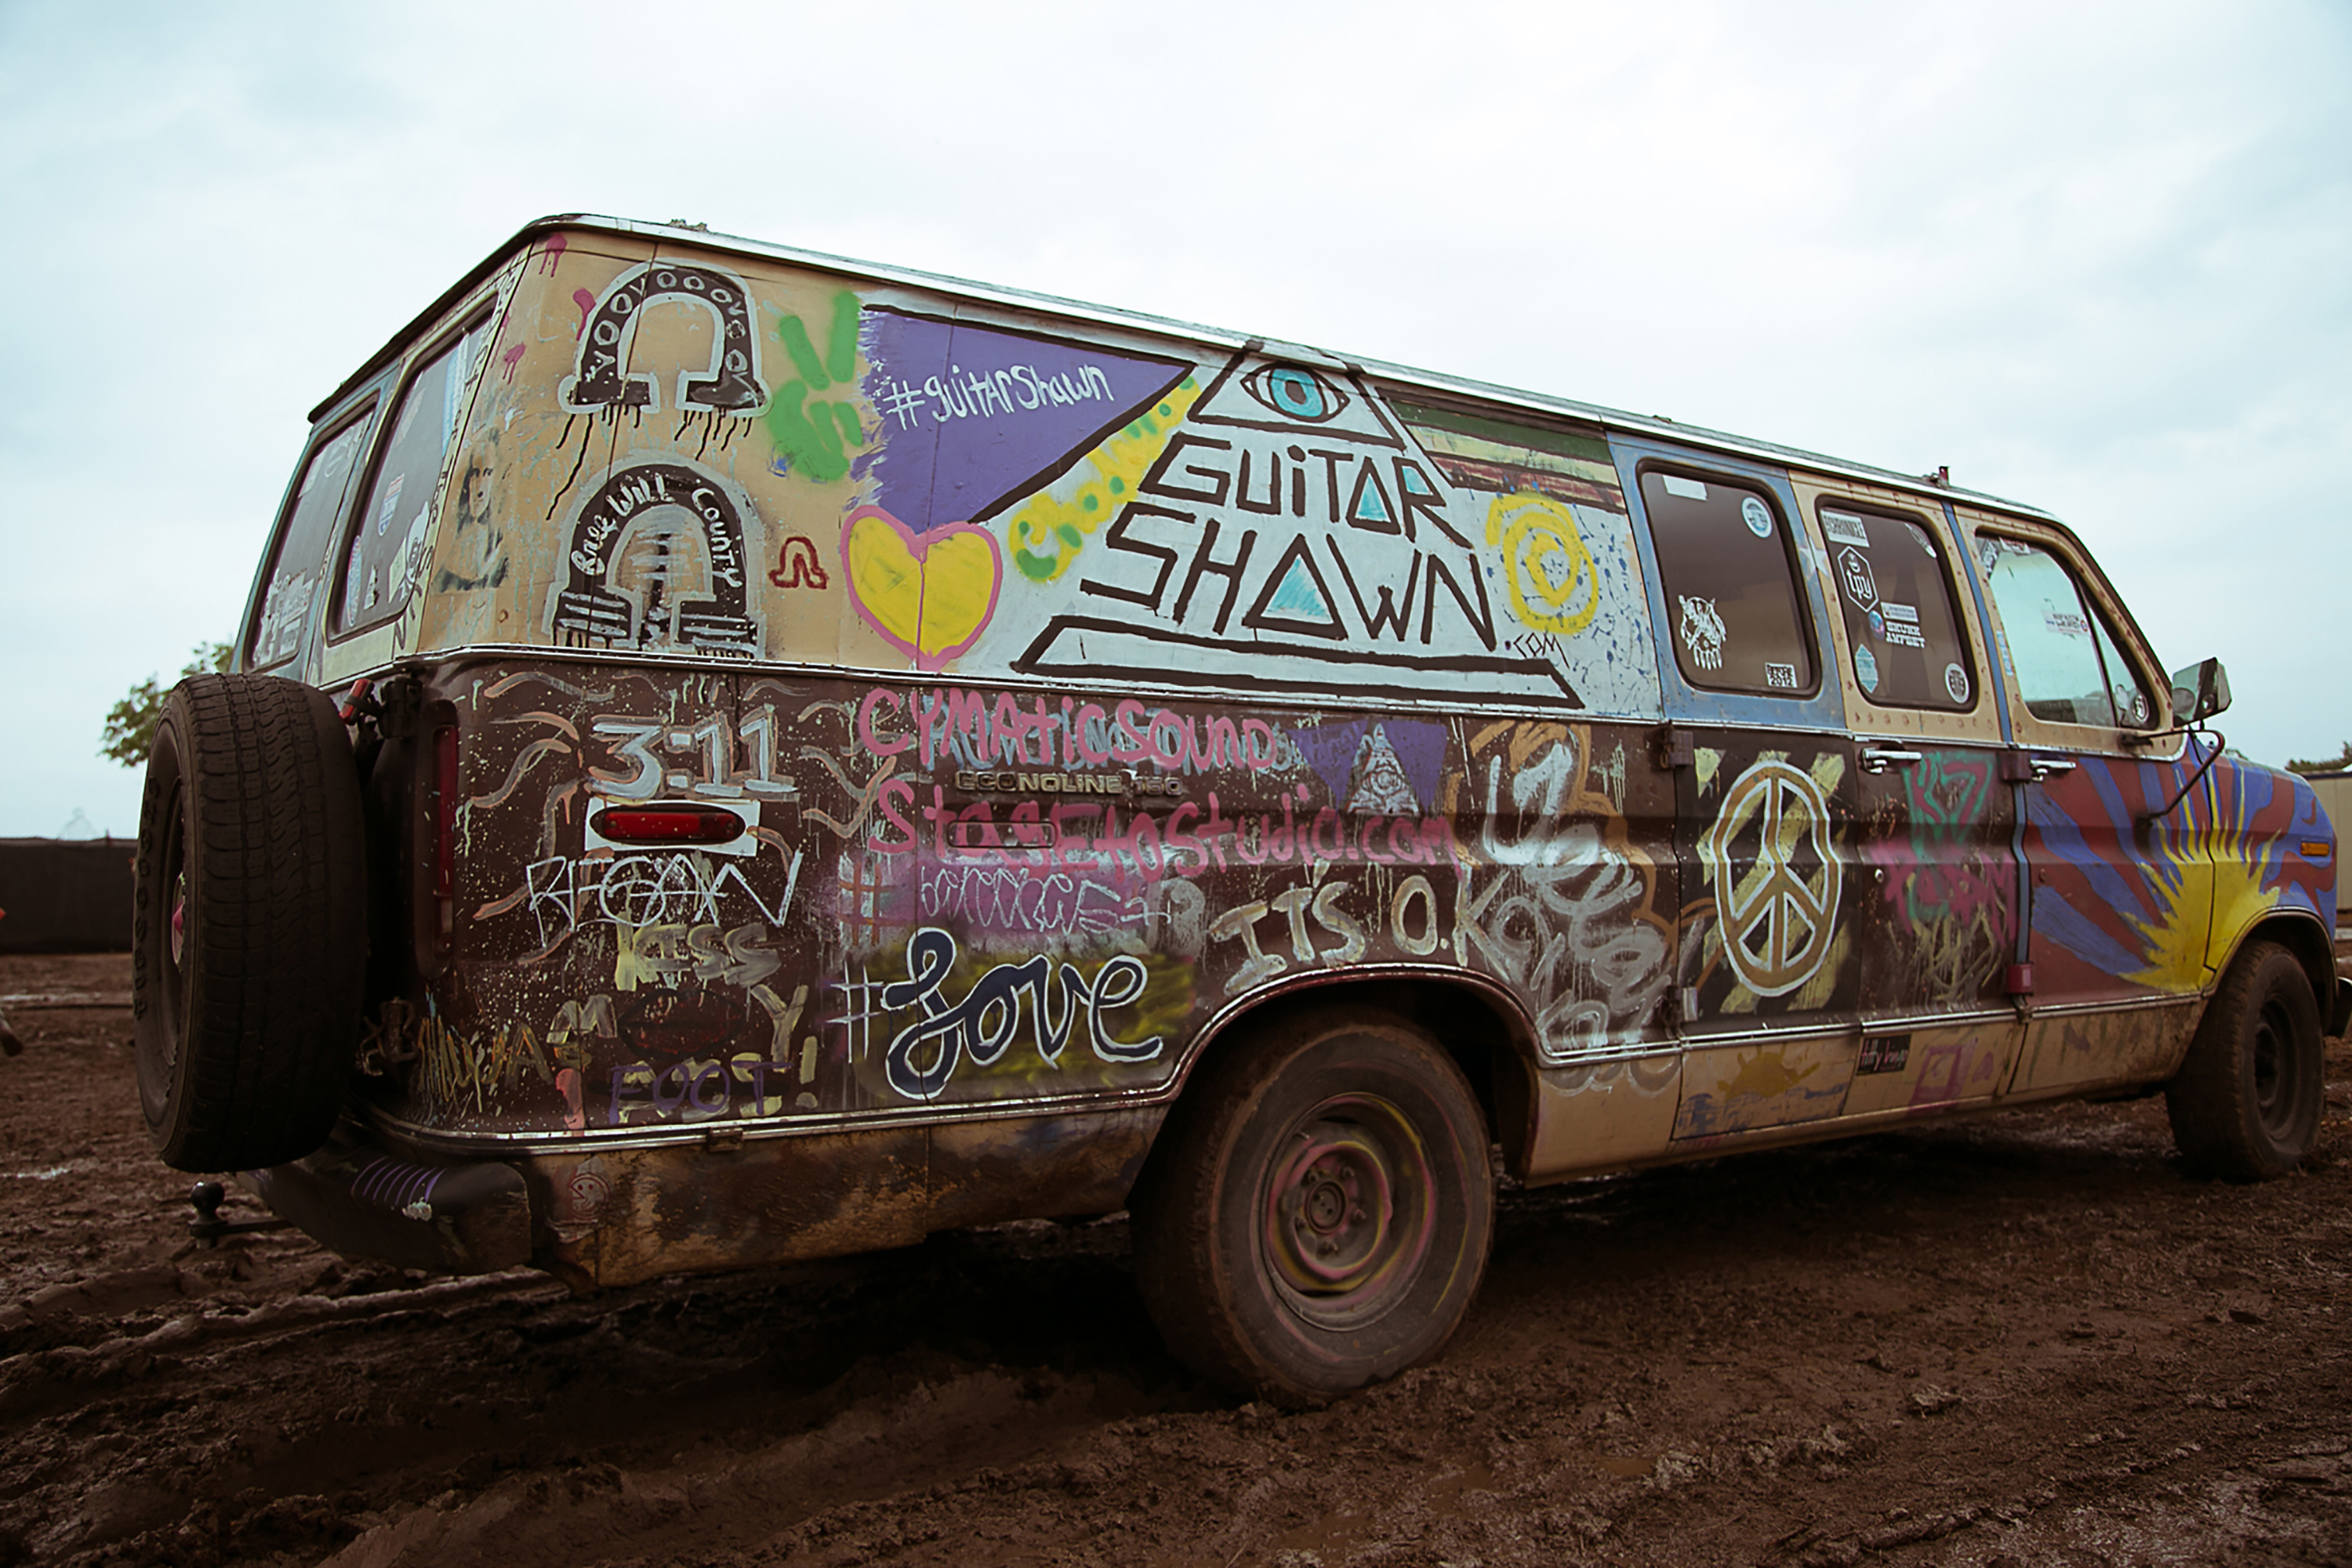 hippie van spray painted graffiti the guitar show